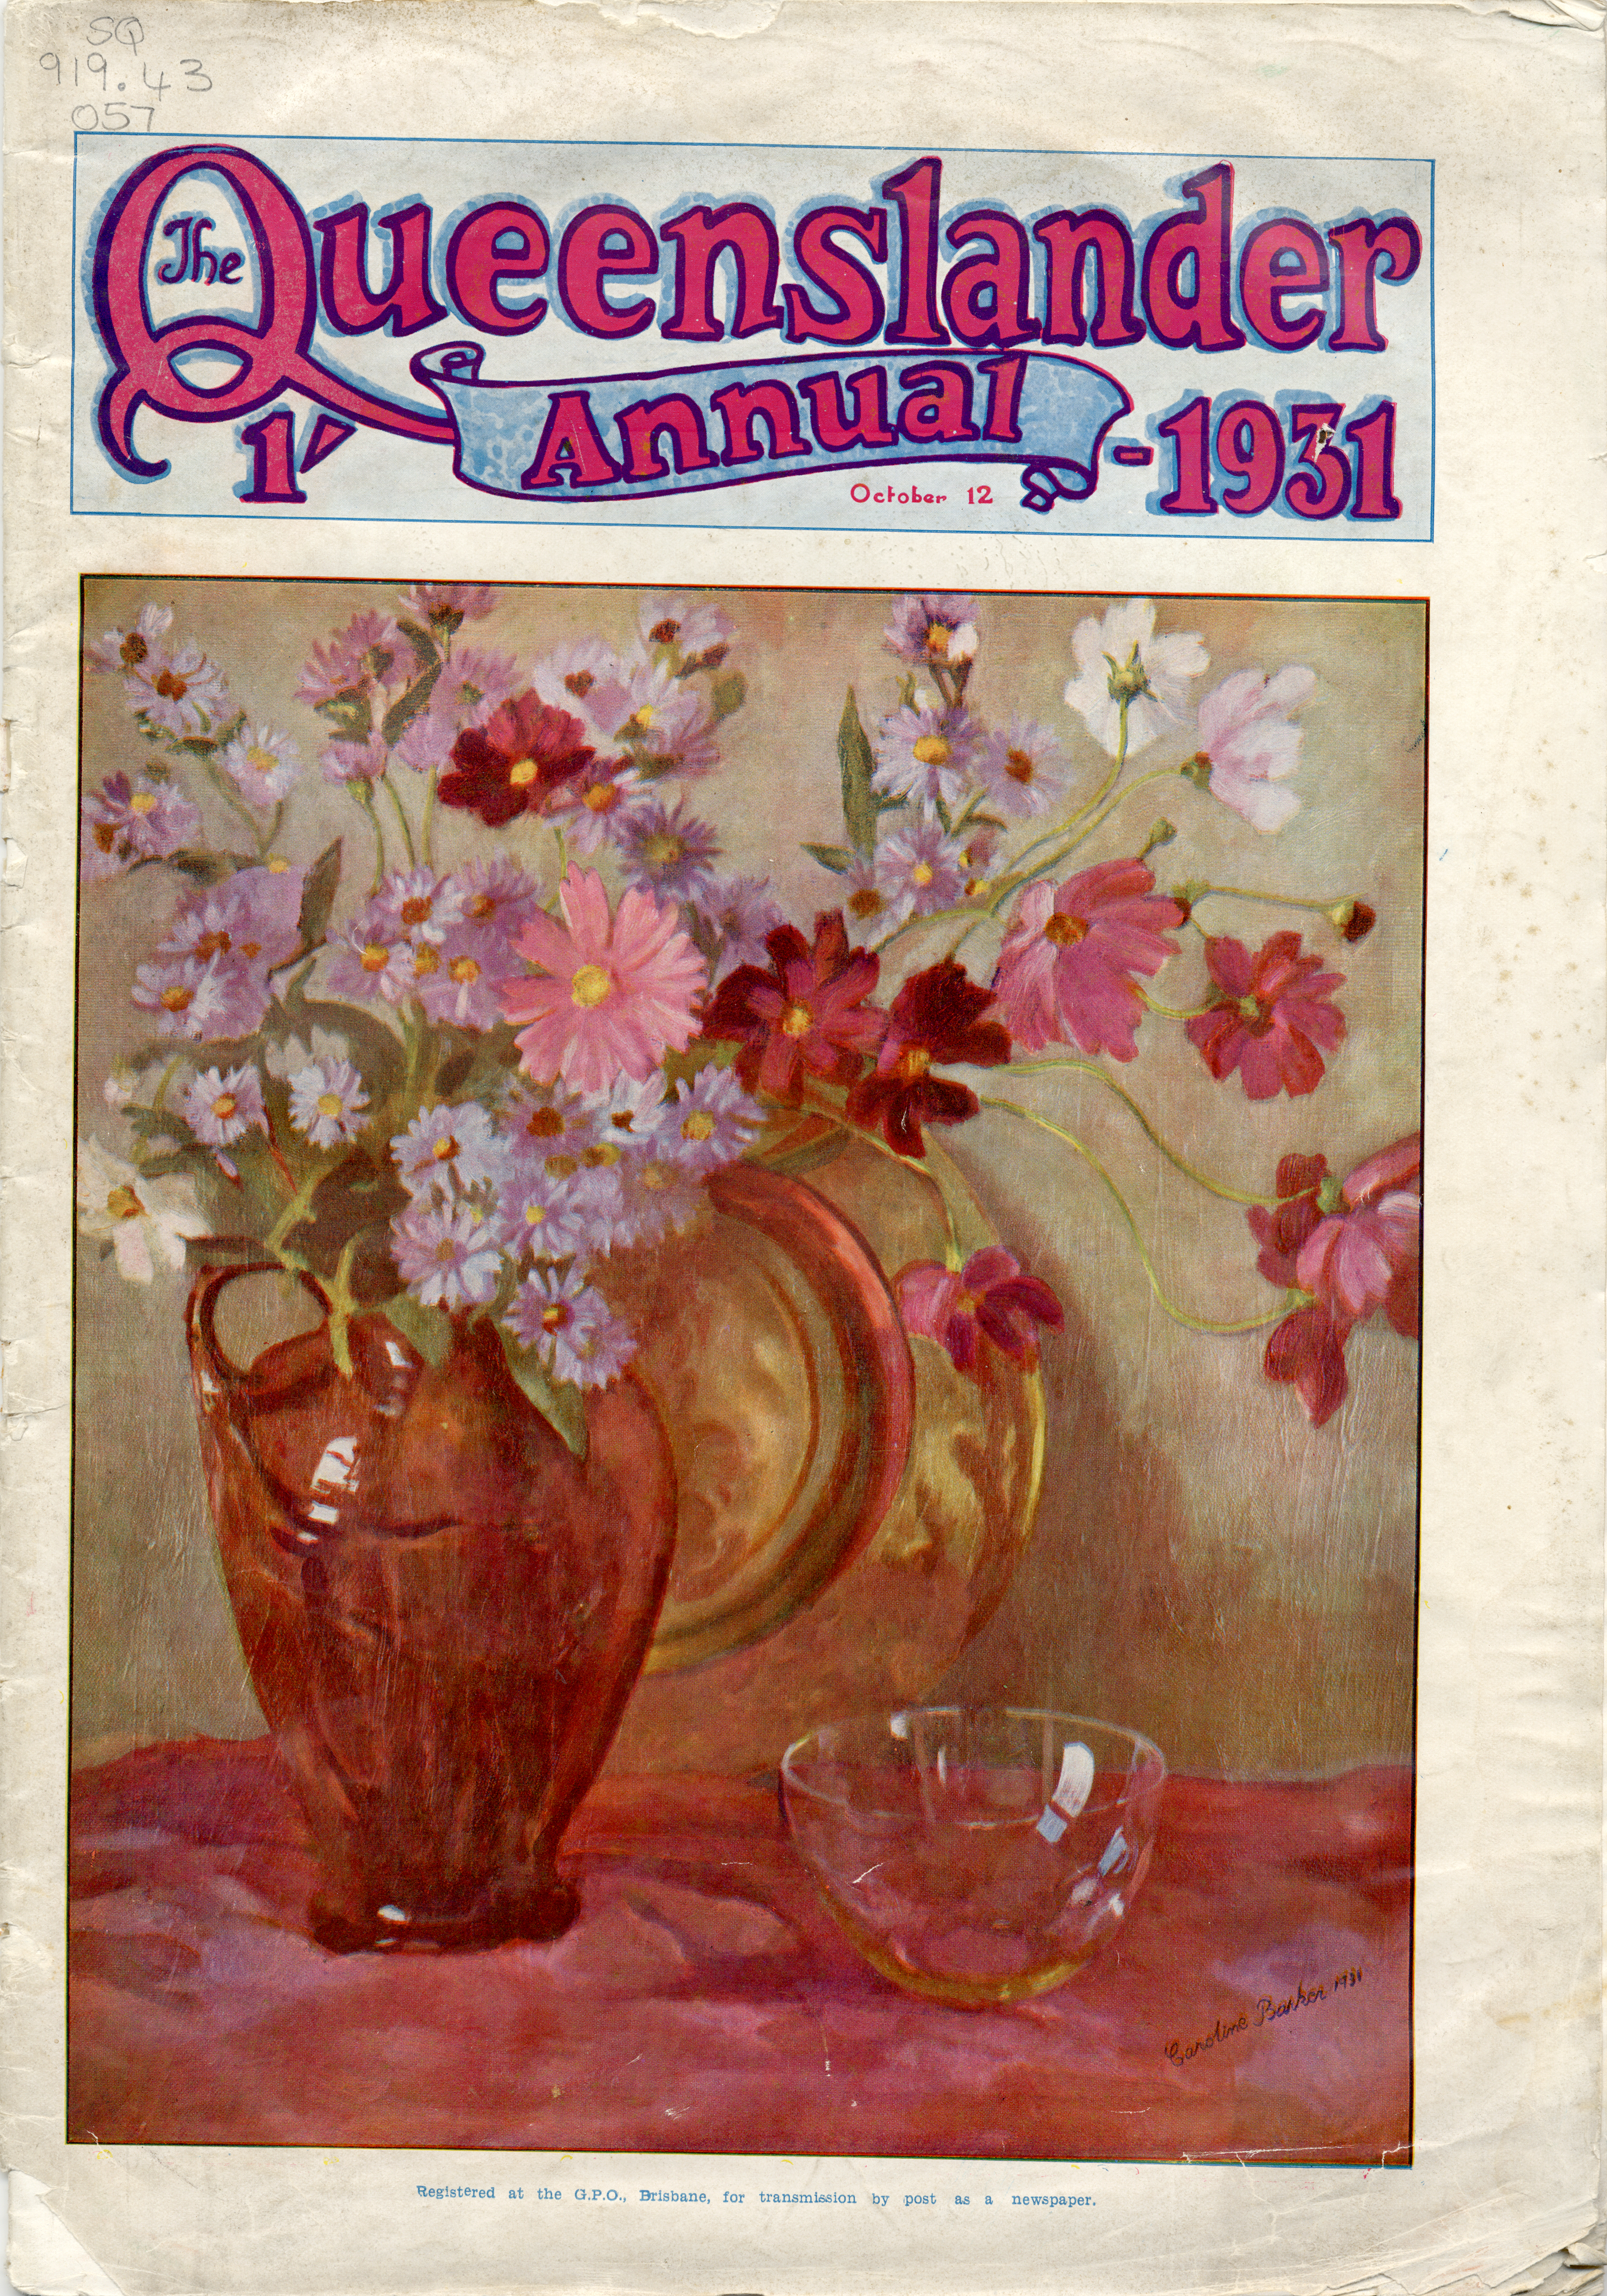 File:Illustrated front cover from The Queenslander annual October 12 1931,  art work by